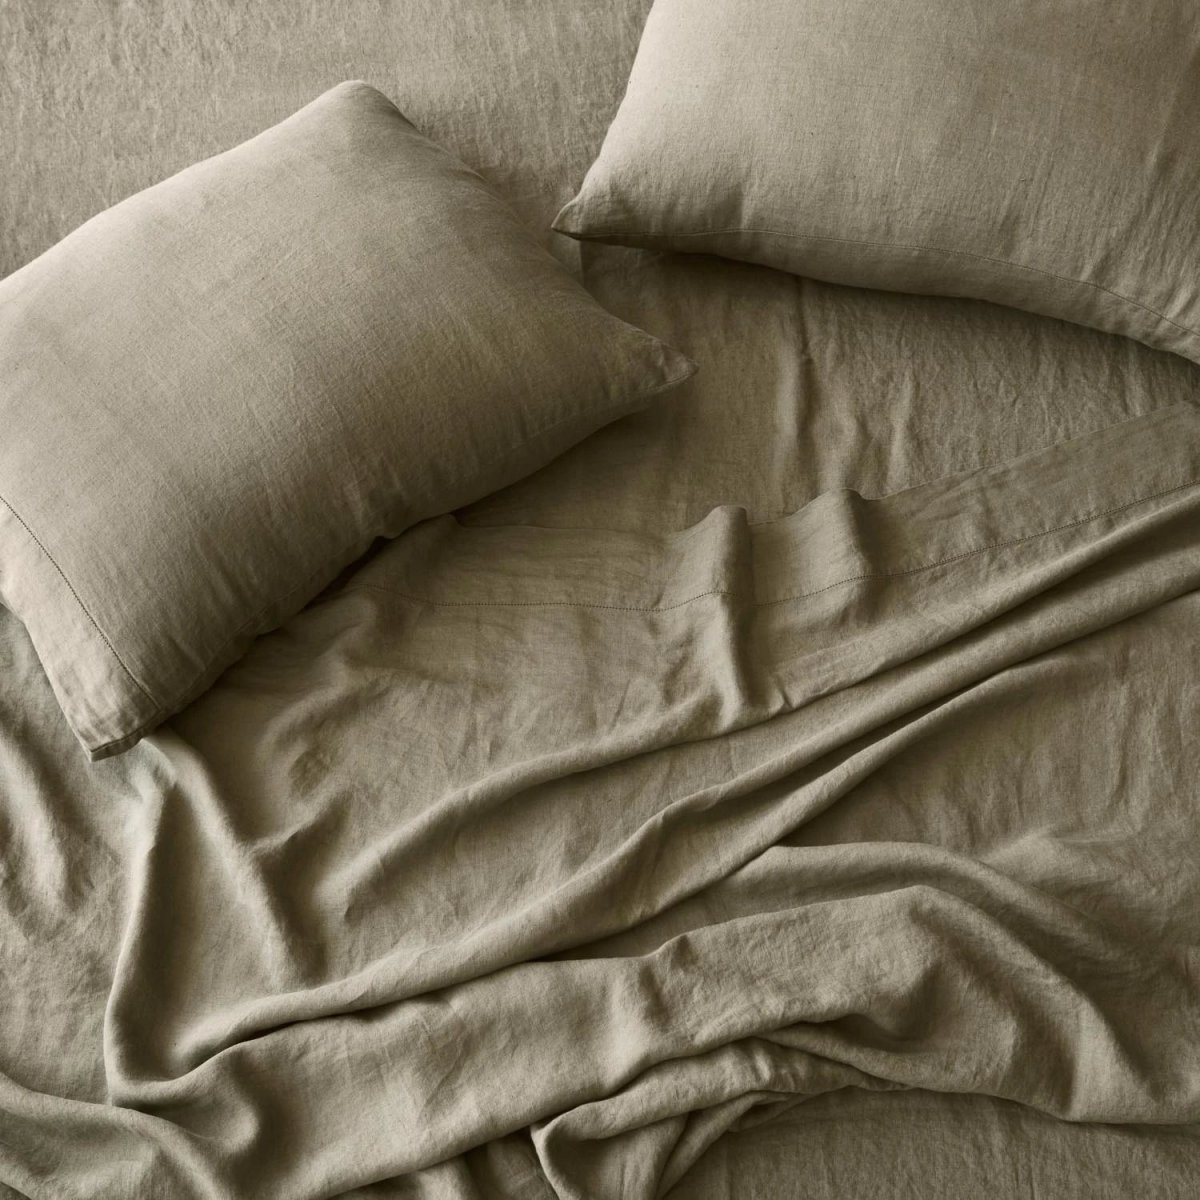 Stonewashed Linen Bed Bundle, olive.